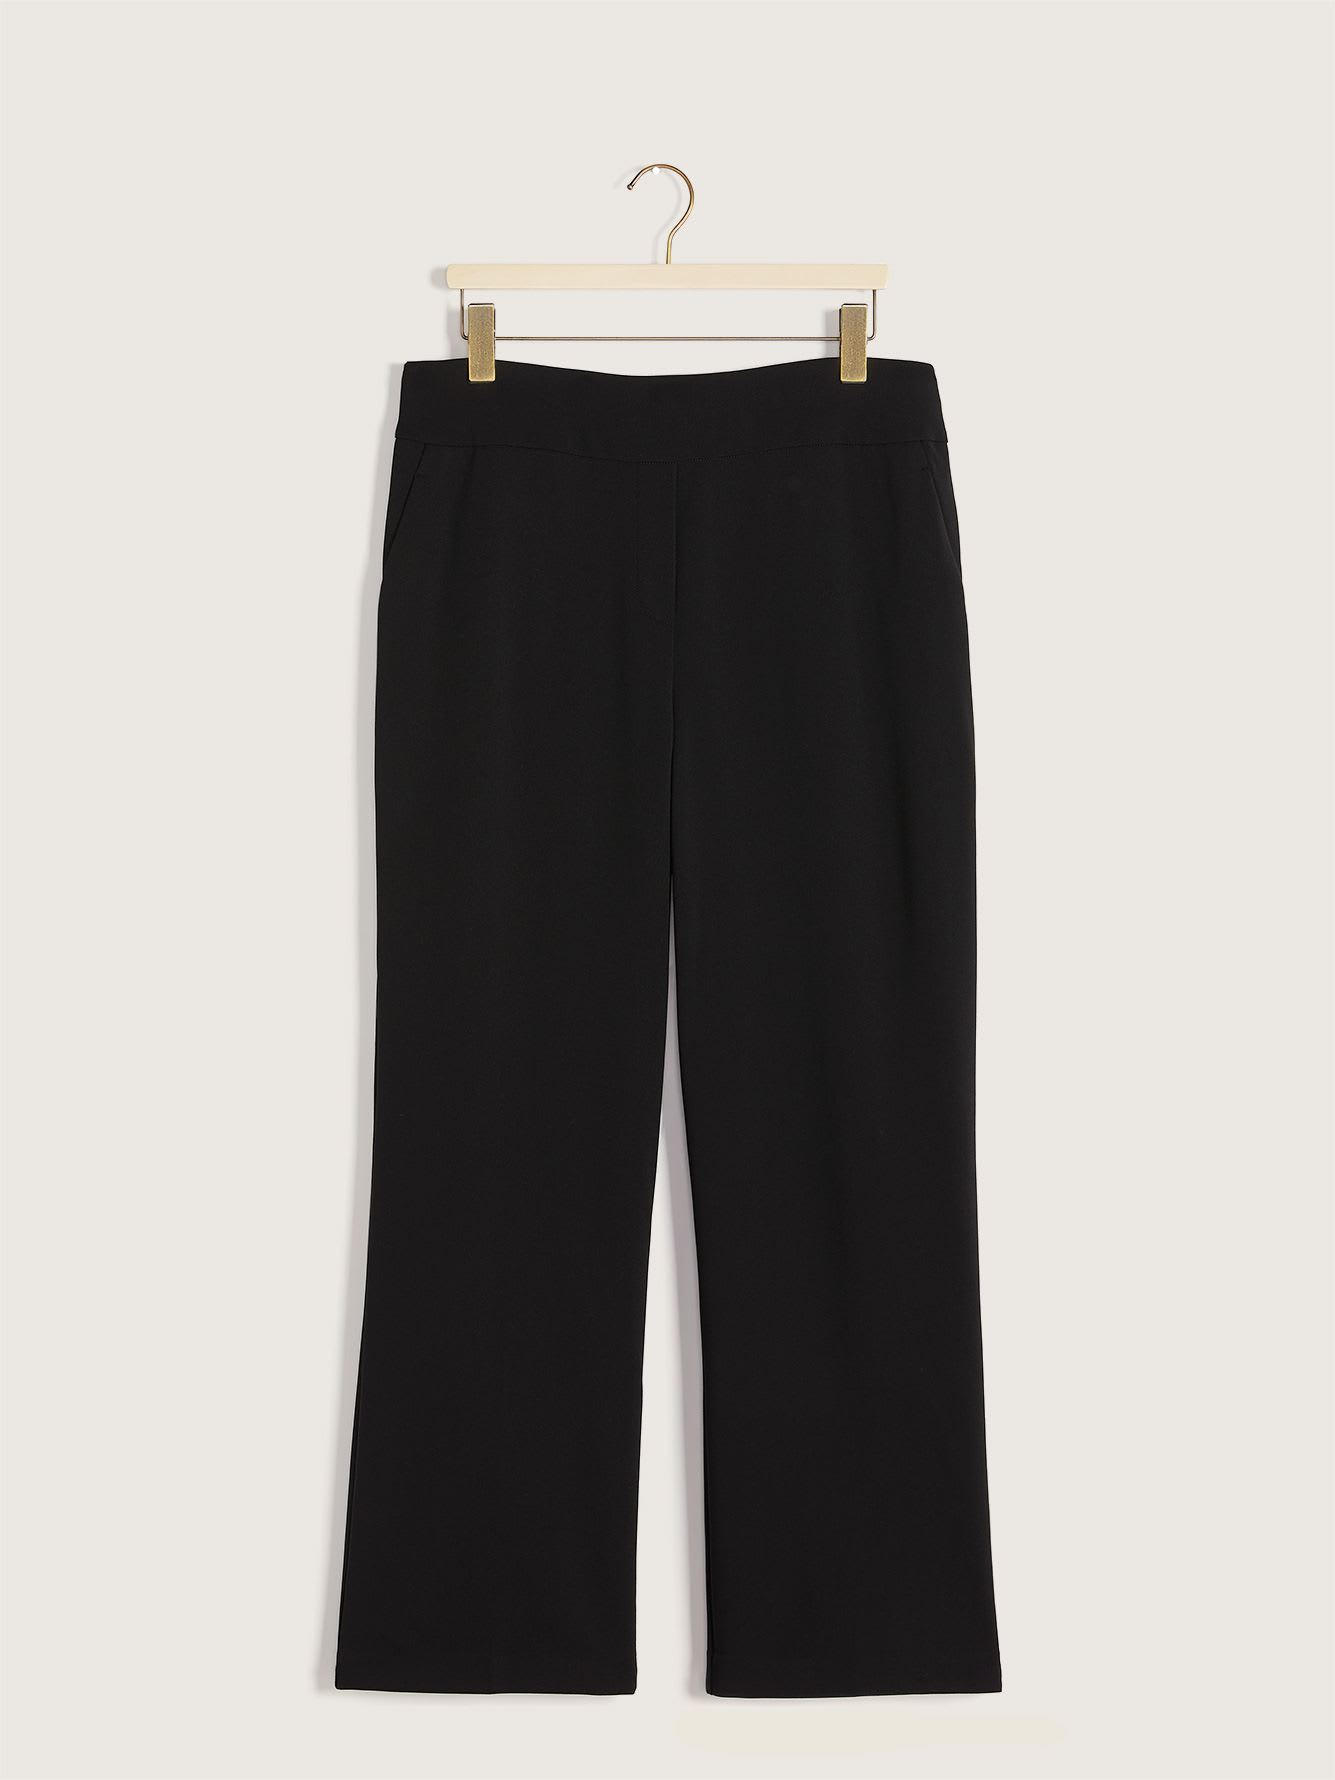 Tall, Wide Leg Pull-On Pant - In Every Story